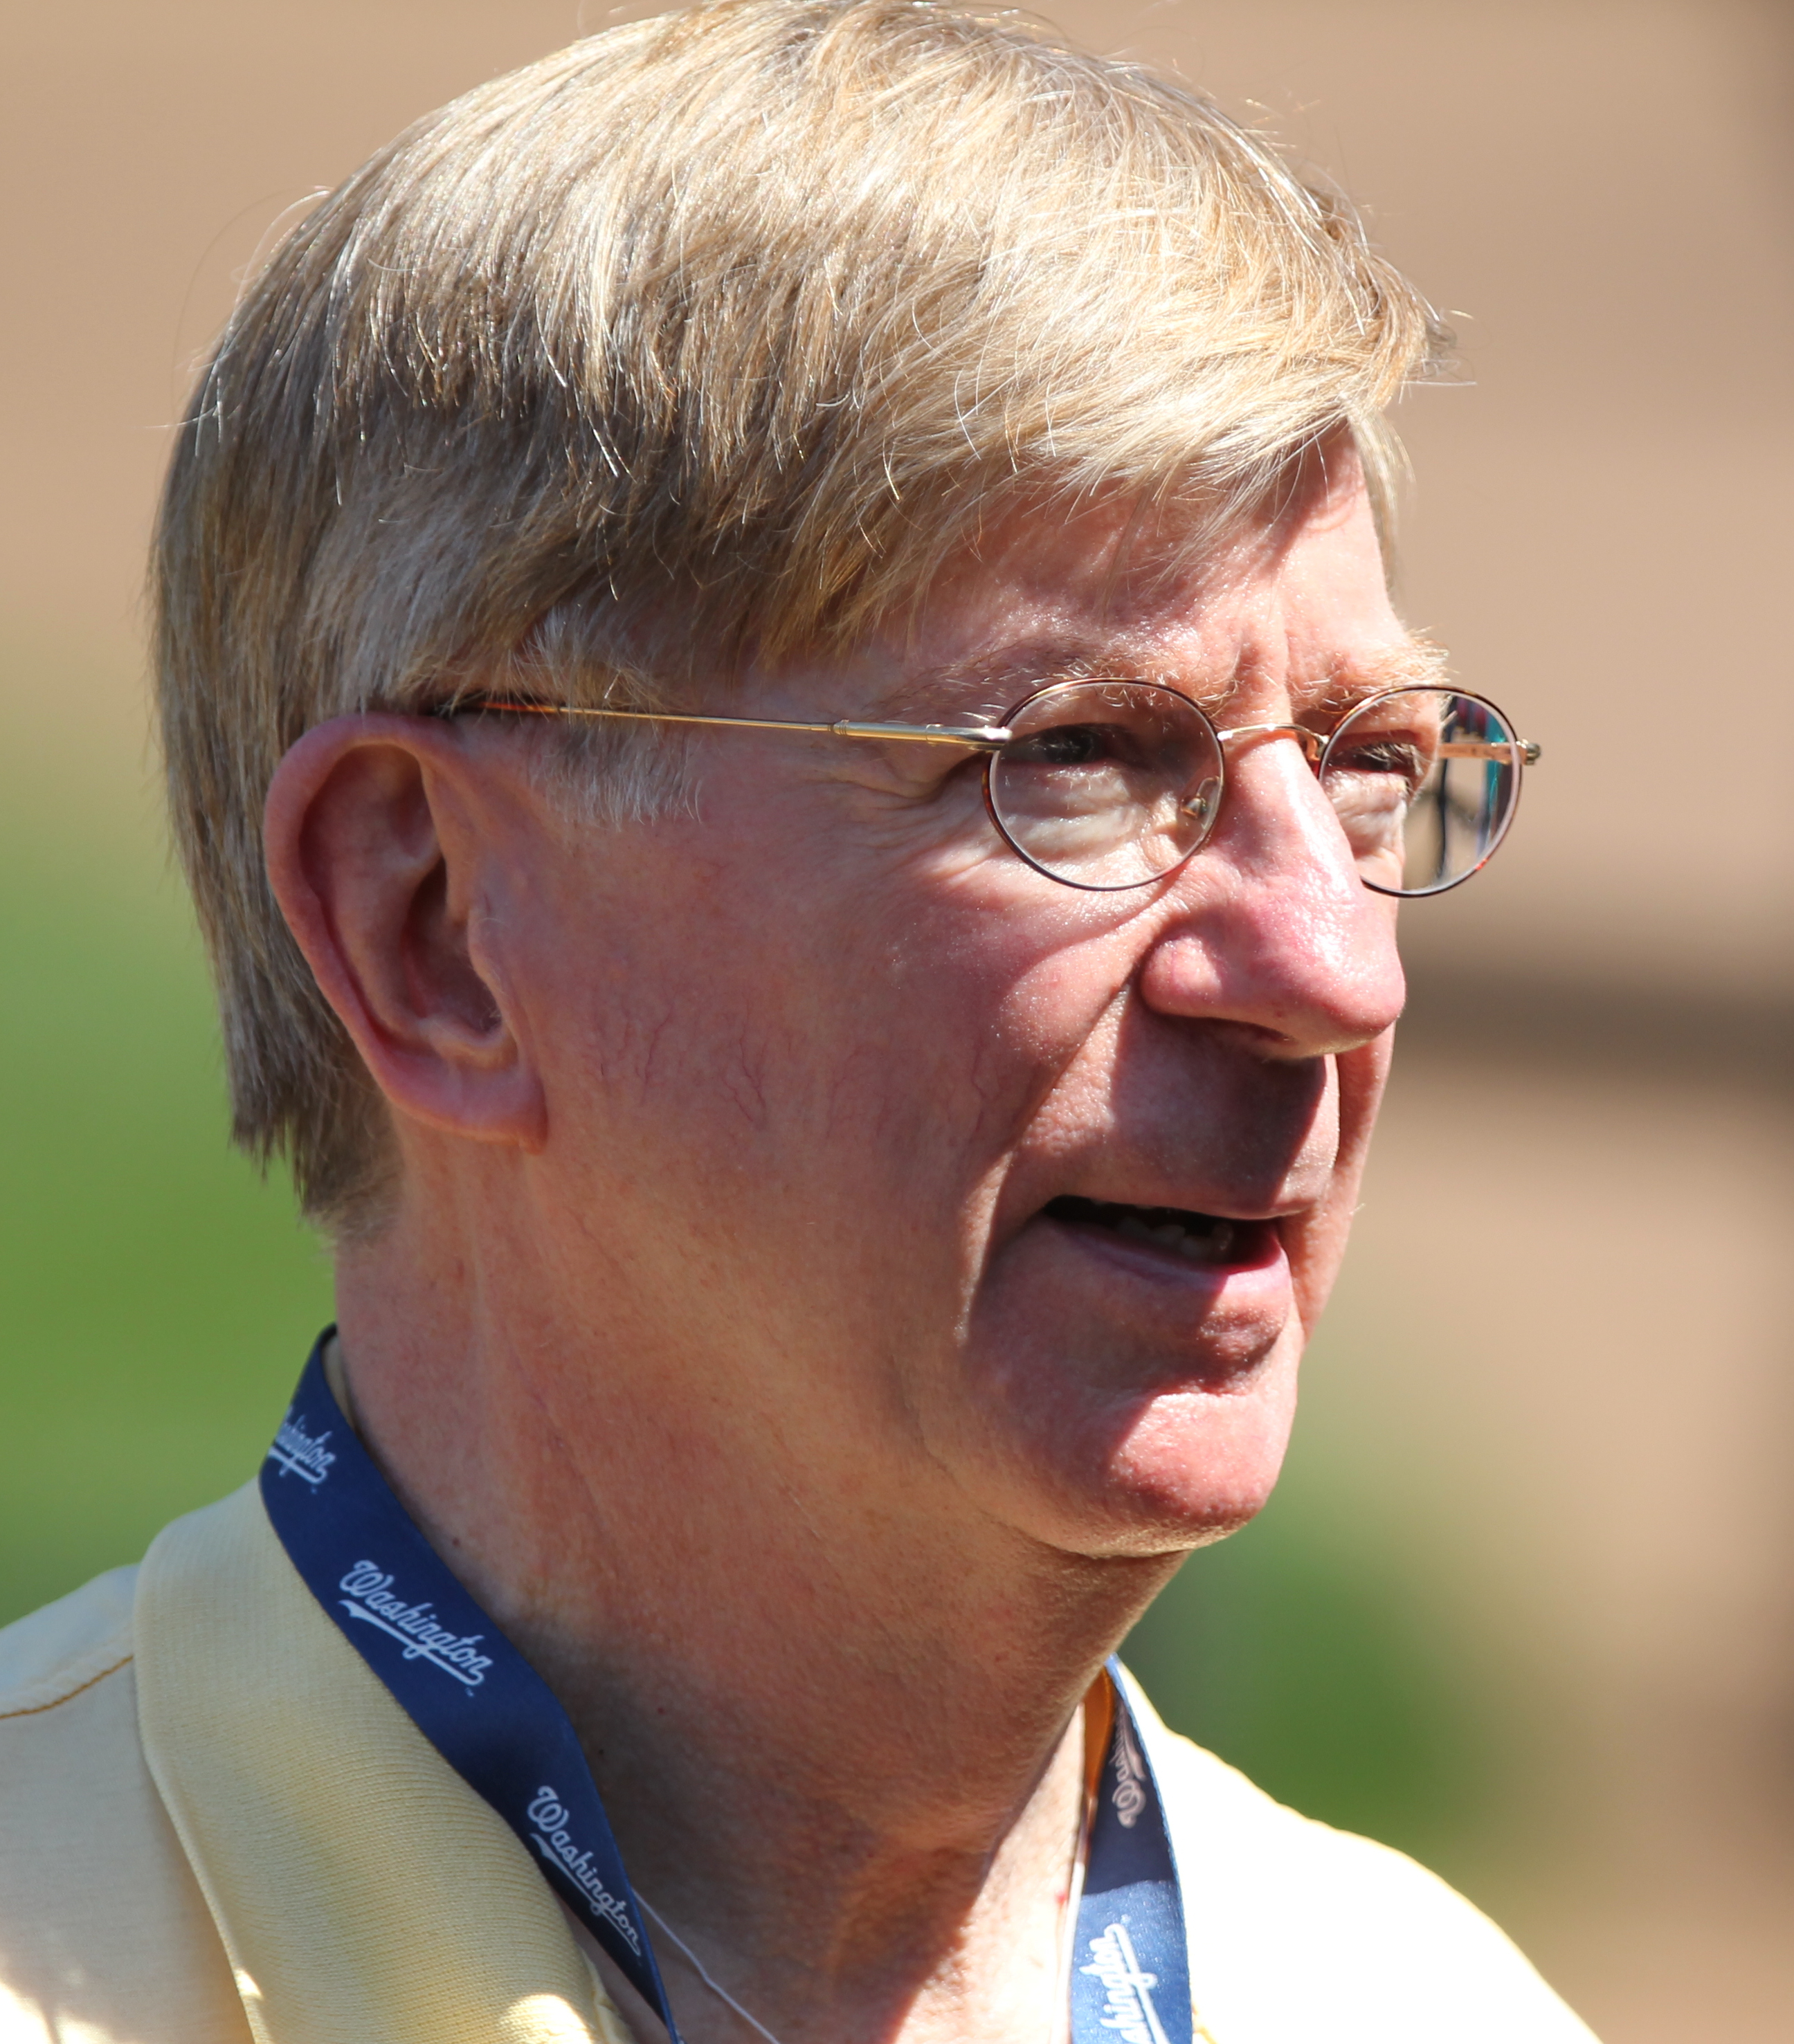 Conservative Columnist George Will: Donald Trump is the GOP's chemotherapy